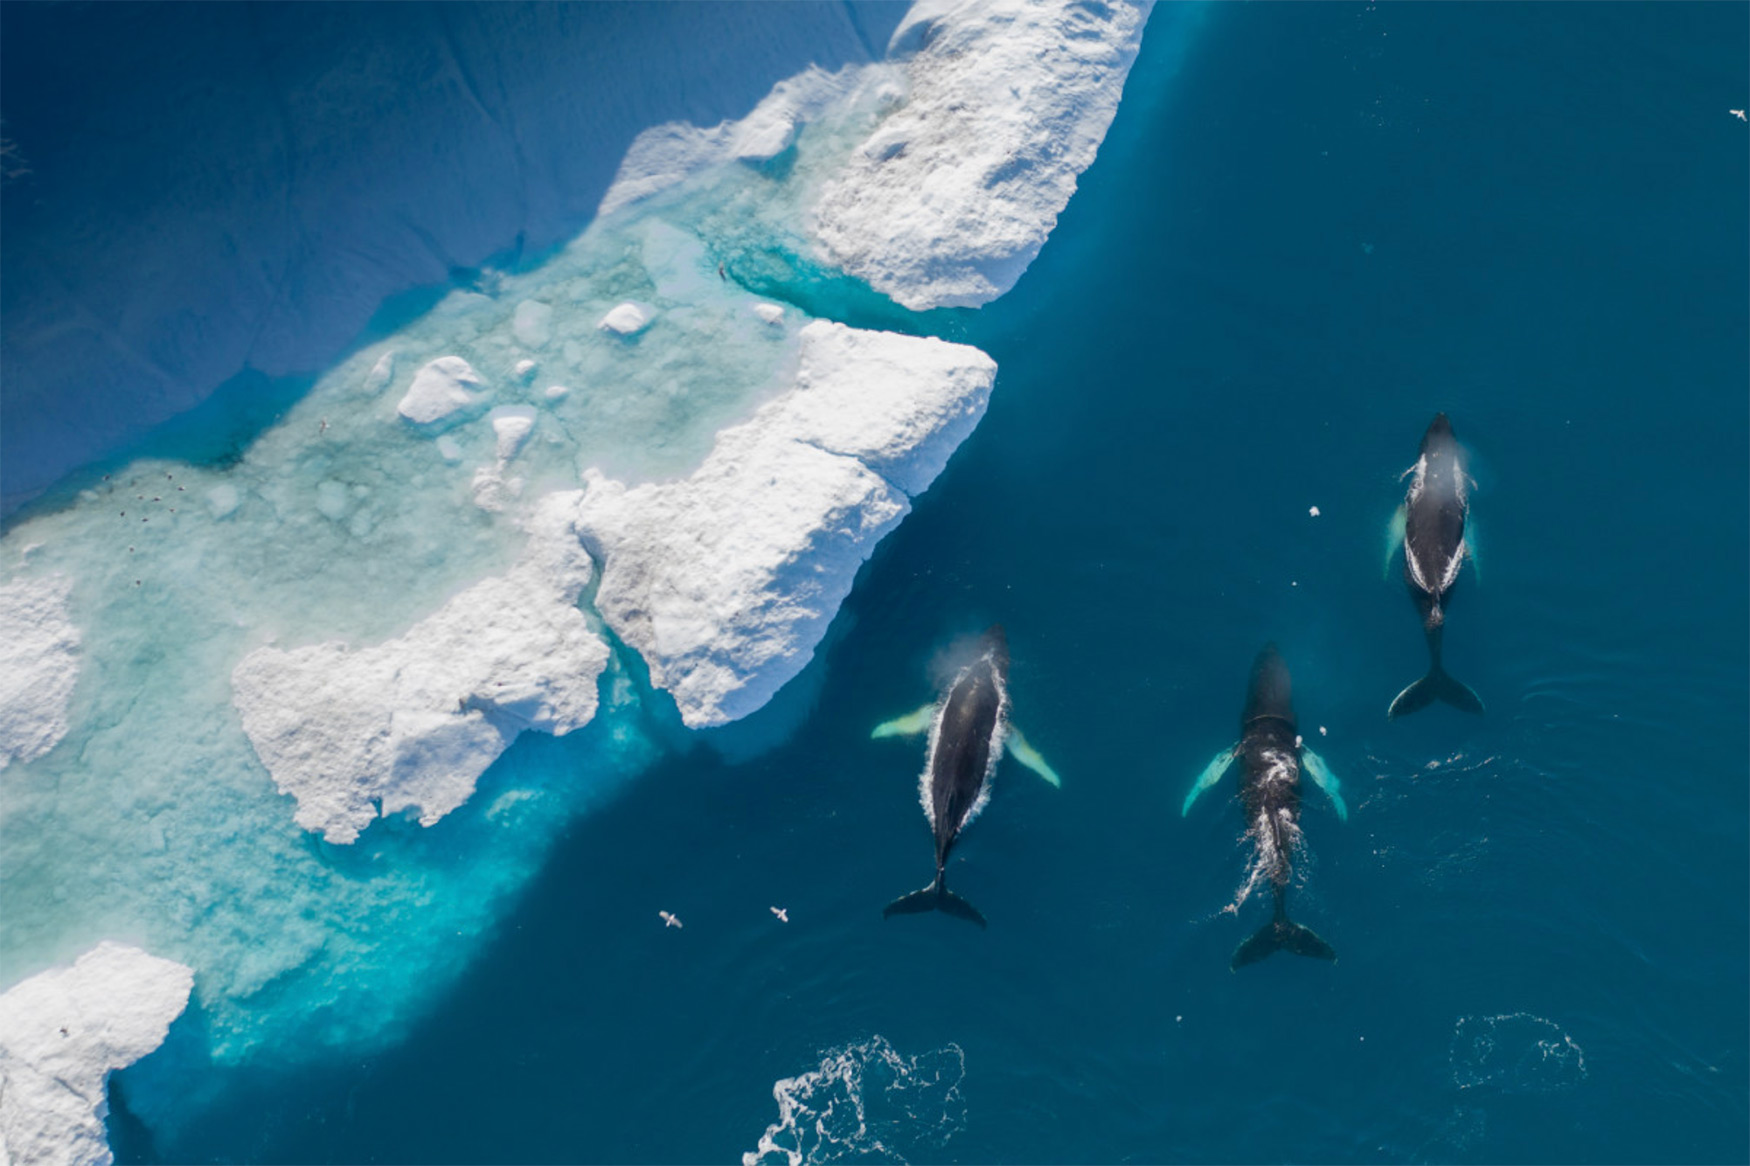 5th Anniversary Prize: 'The Beauty of Greenland from Above' fot. Albert (Holandia)